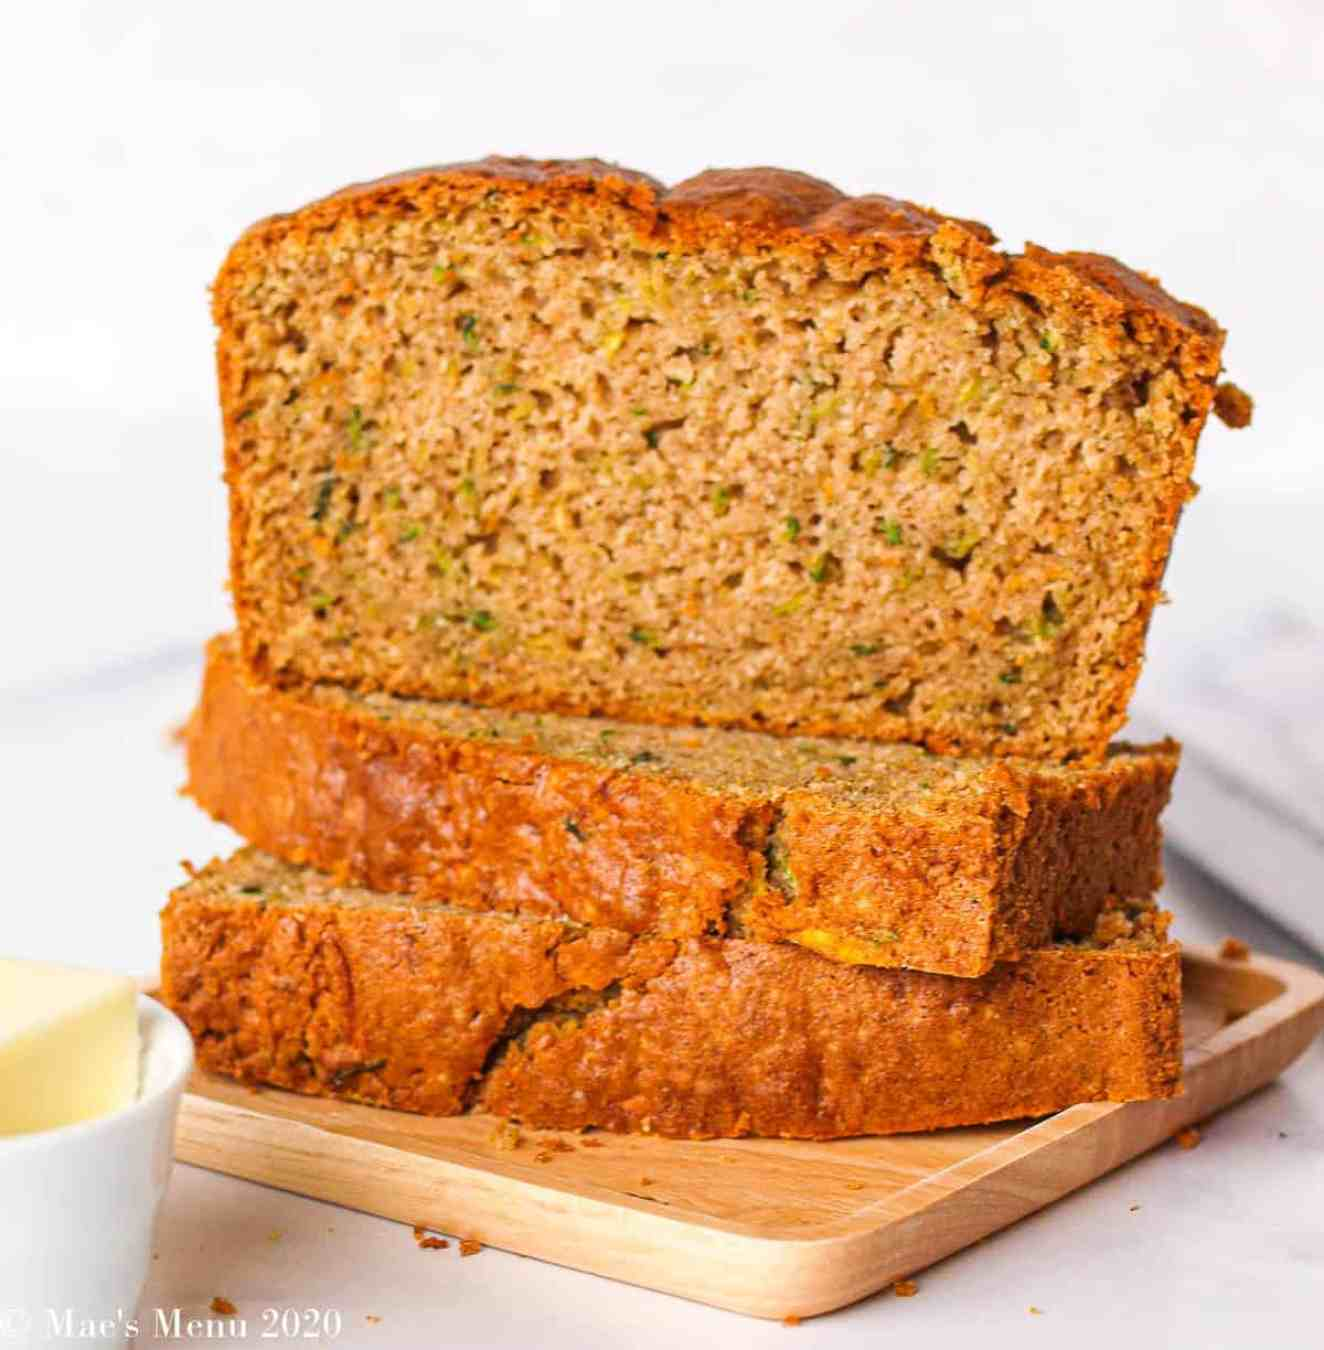 Two pieces of zucchini bread stacked on their side with a piece of bread sitting on top.